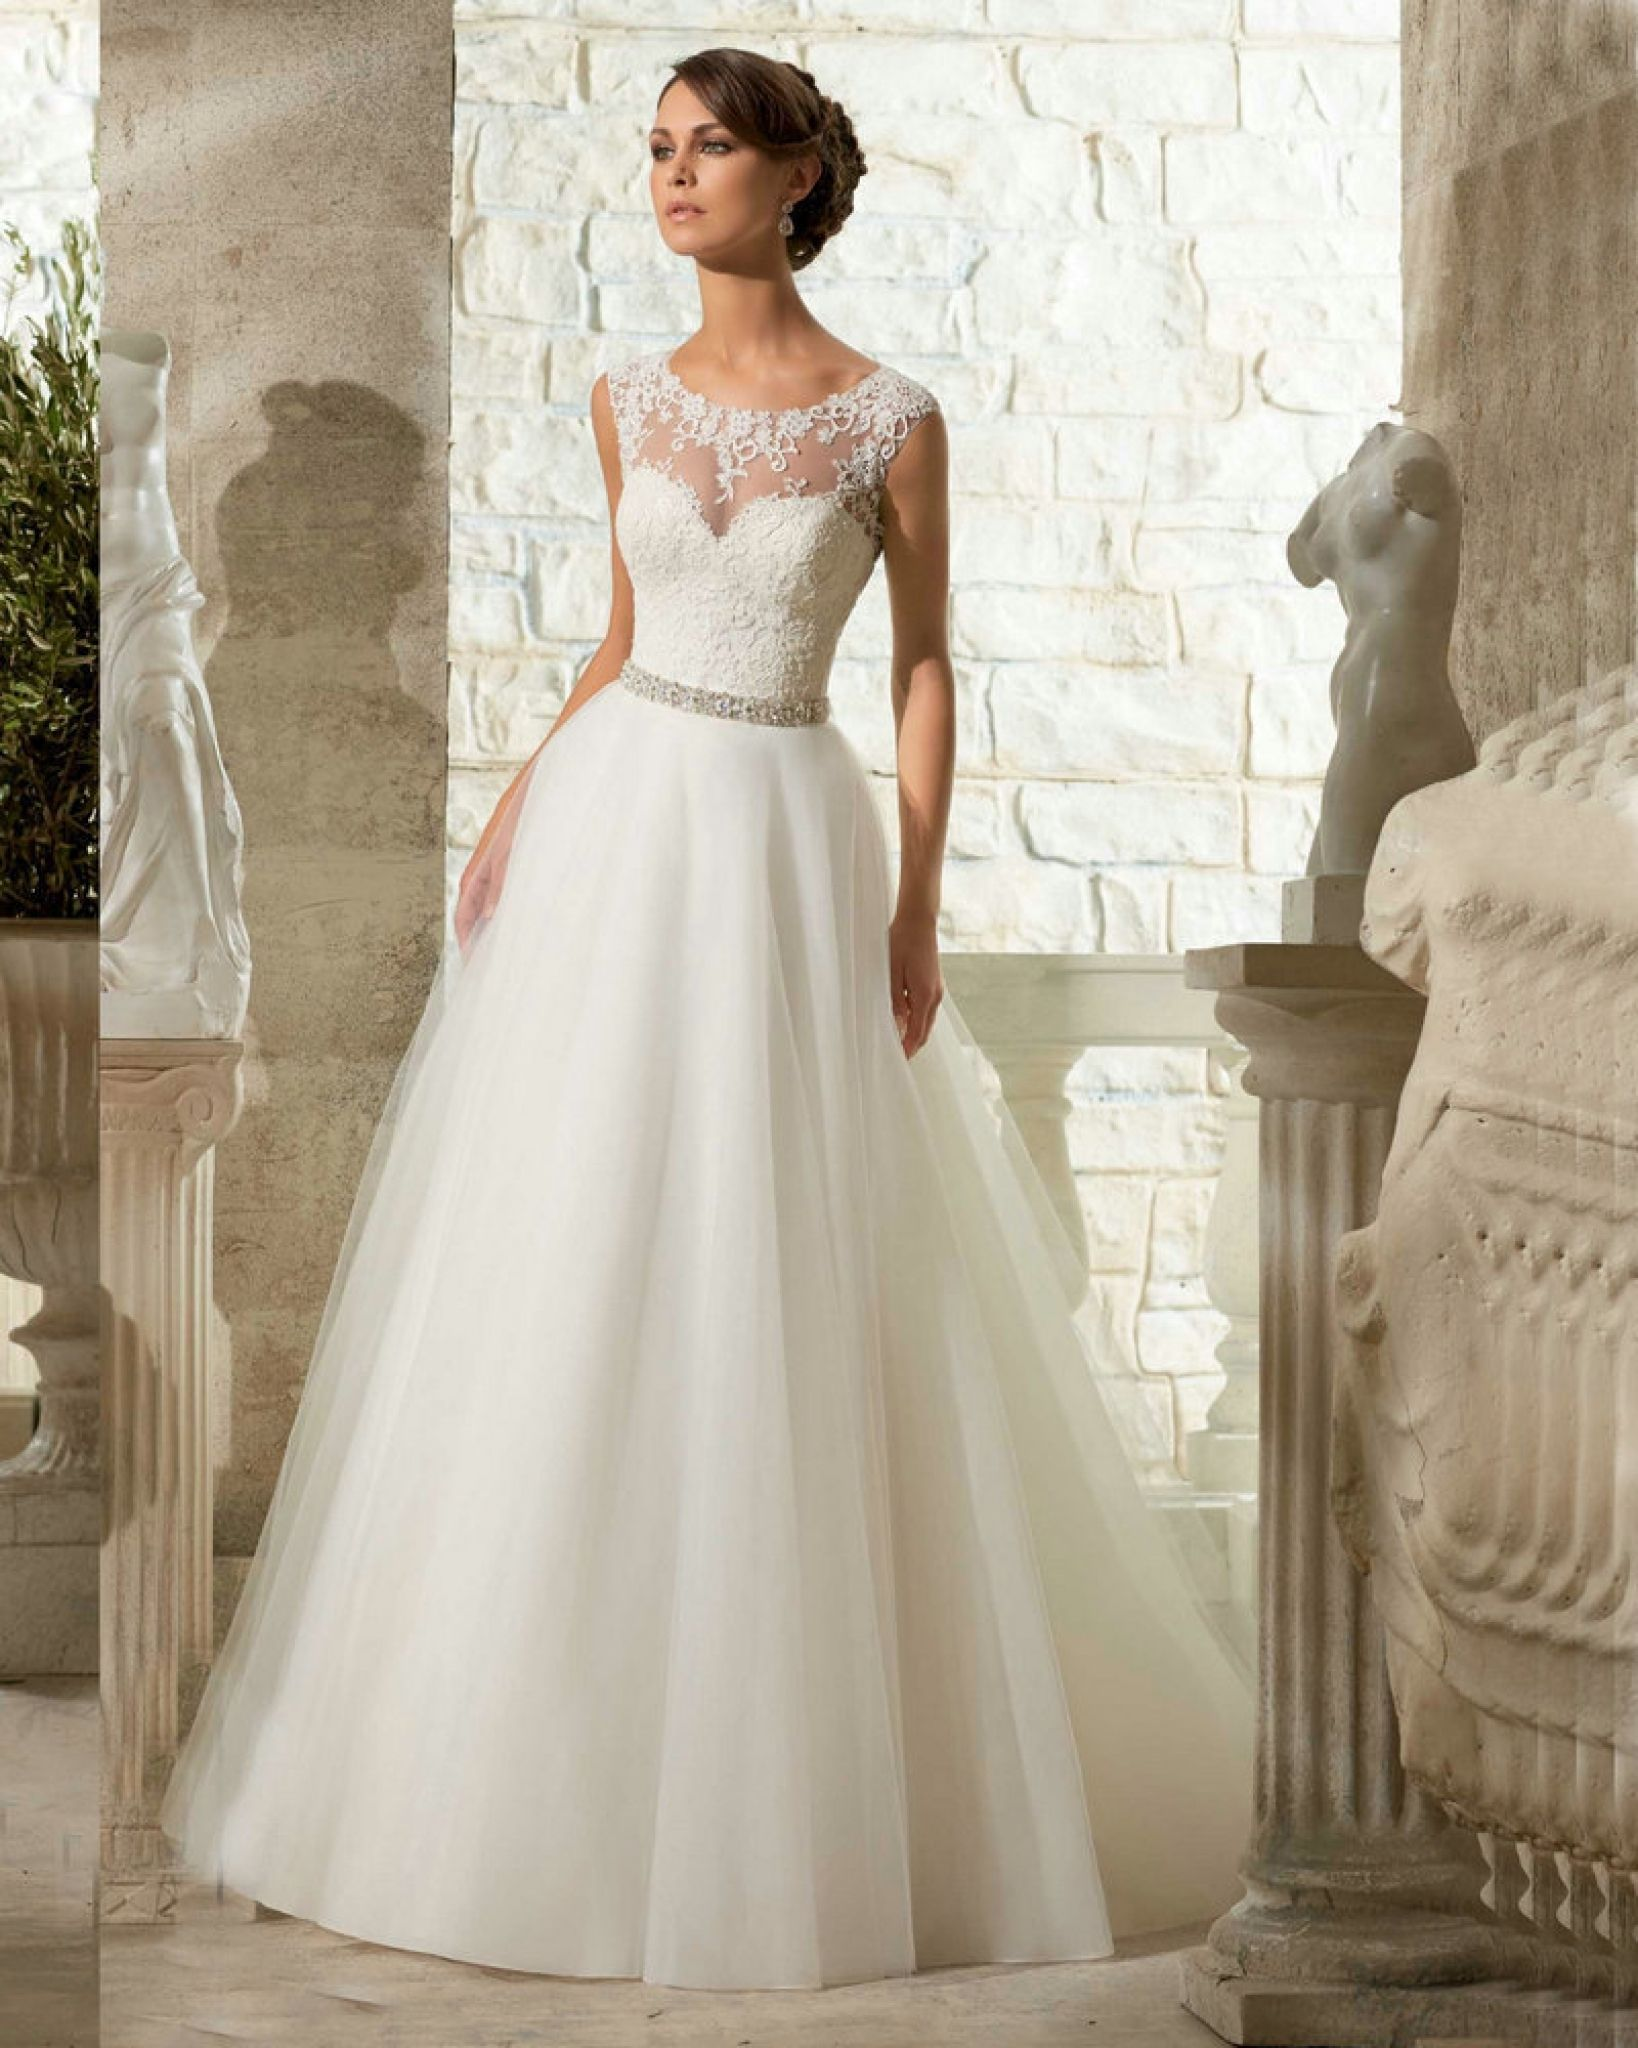 cheap wedding dresses from china - cute dresses for a wedding Check ...